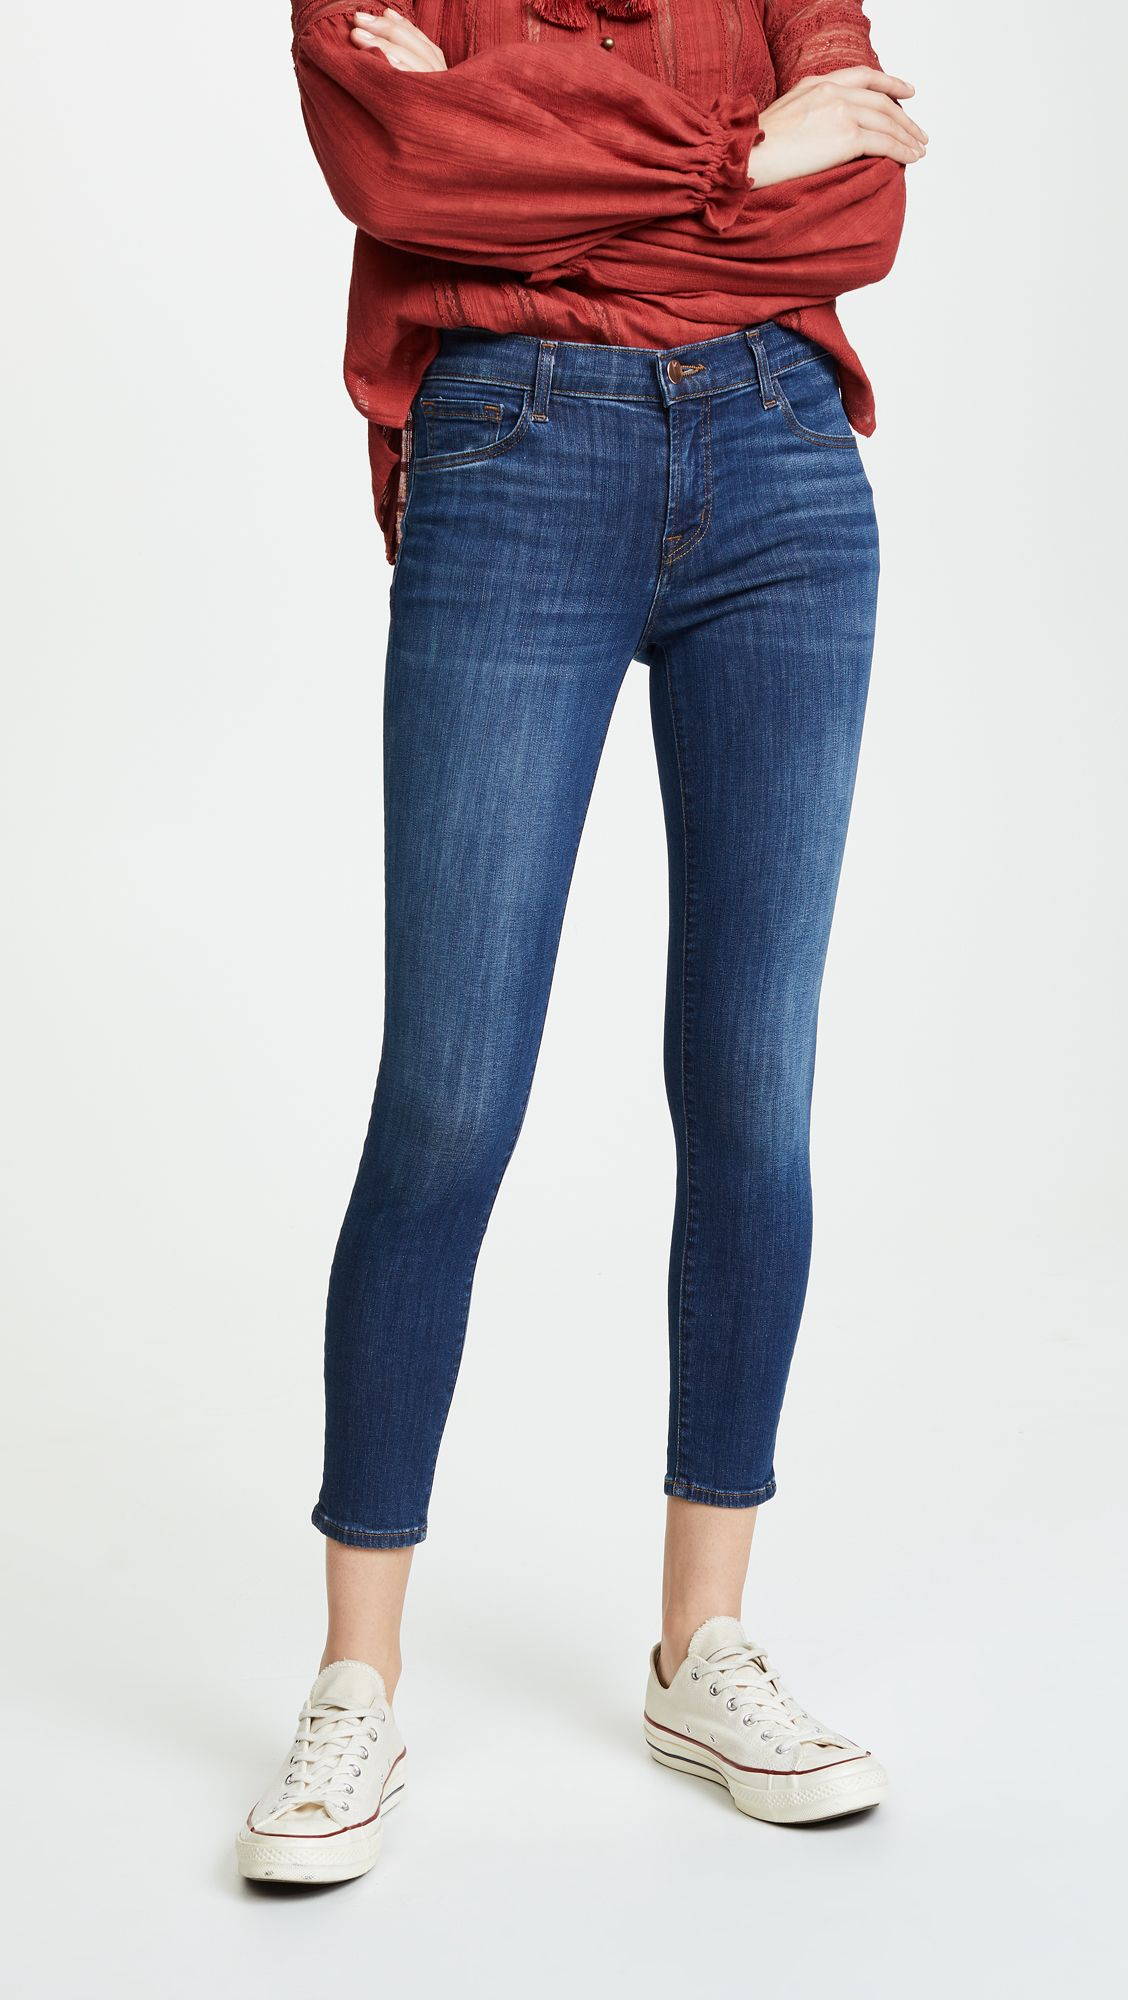 7f0bbfc1287df 835 Cropped Jeans in 2019 | Closet | Cropped jeans, Jeans, J brand